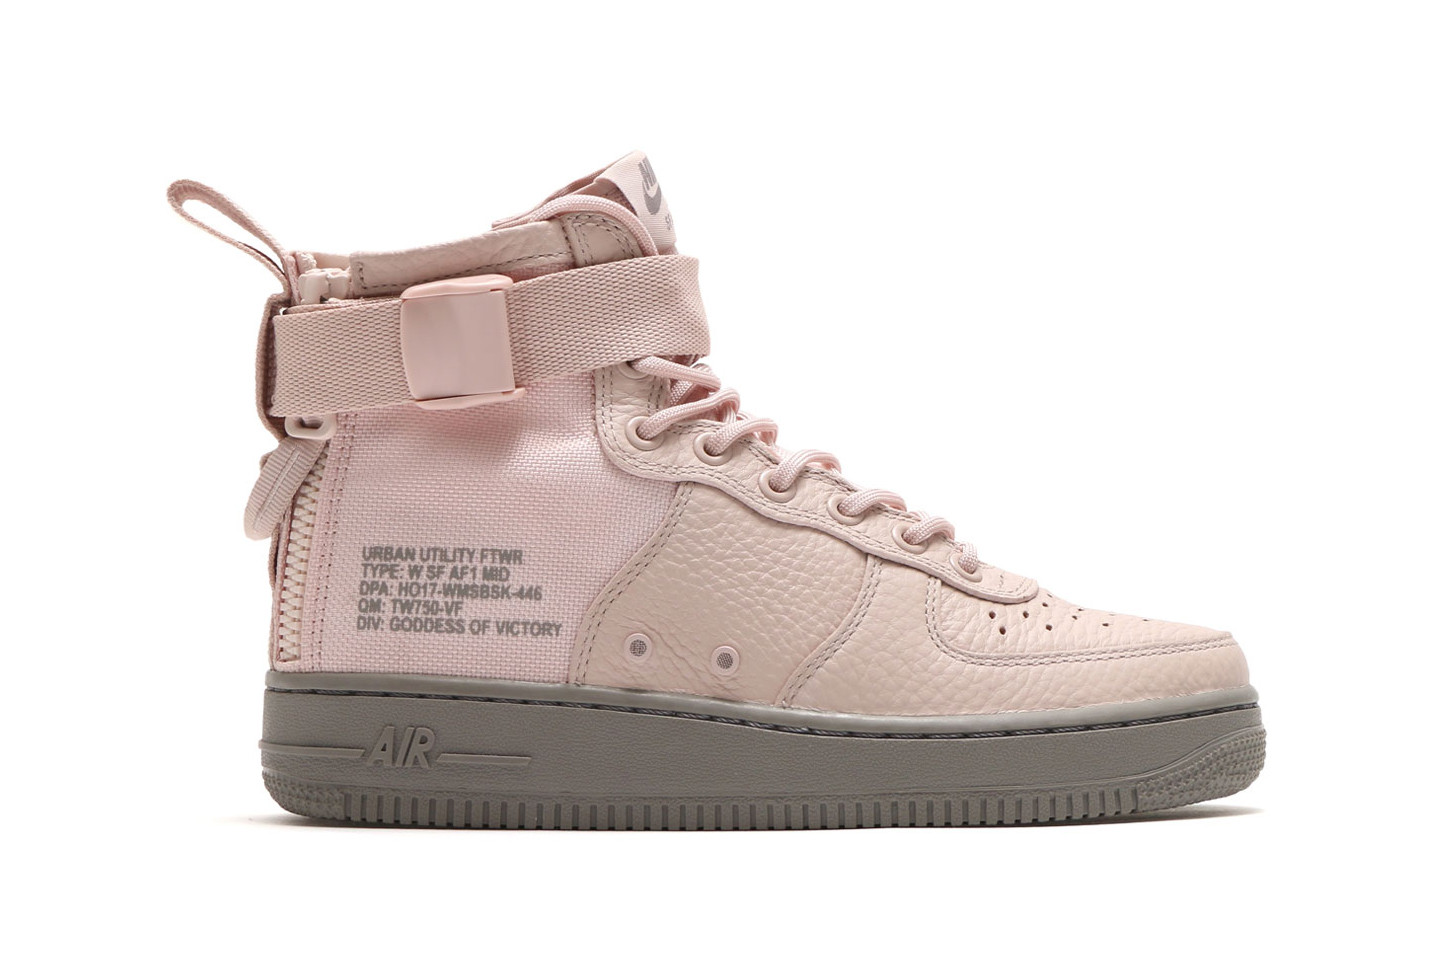 Nike Special Field Air Force 1 Mid in